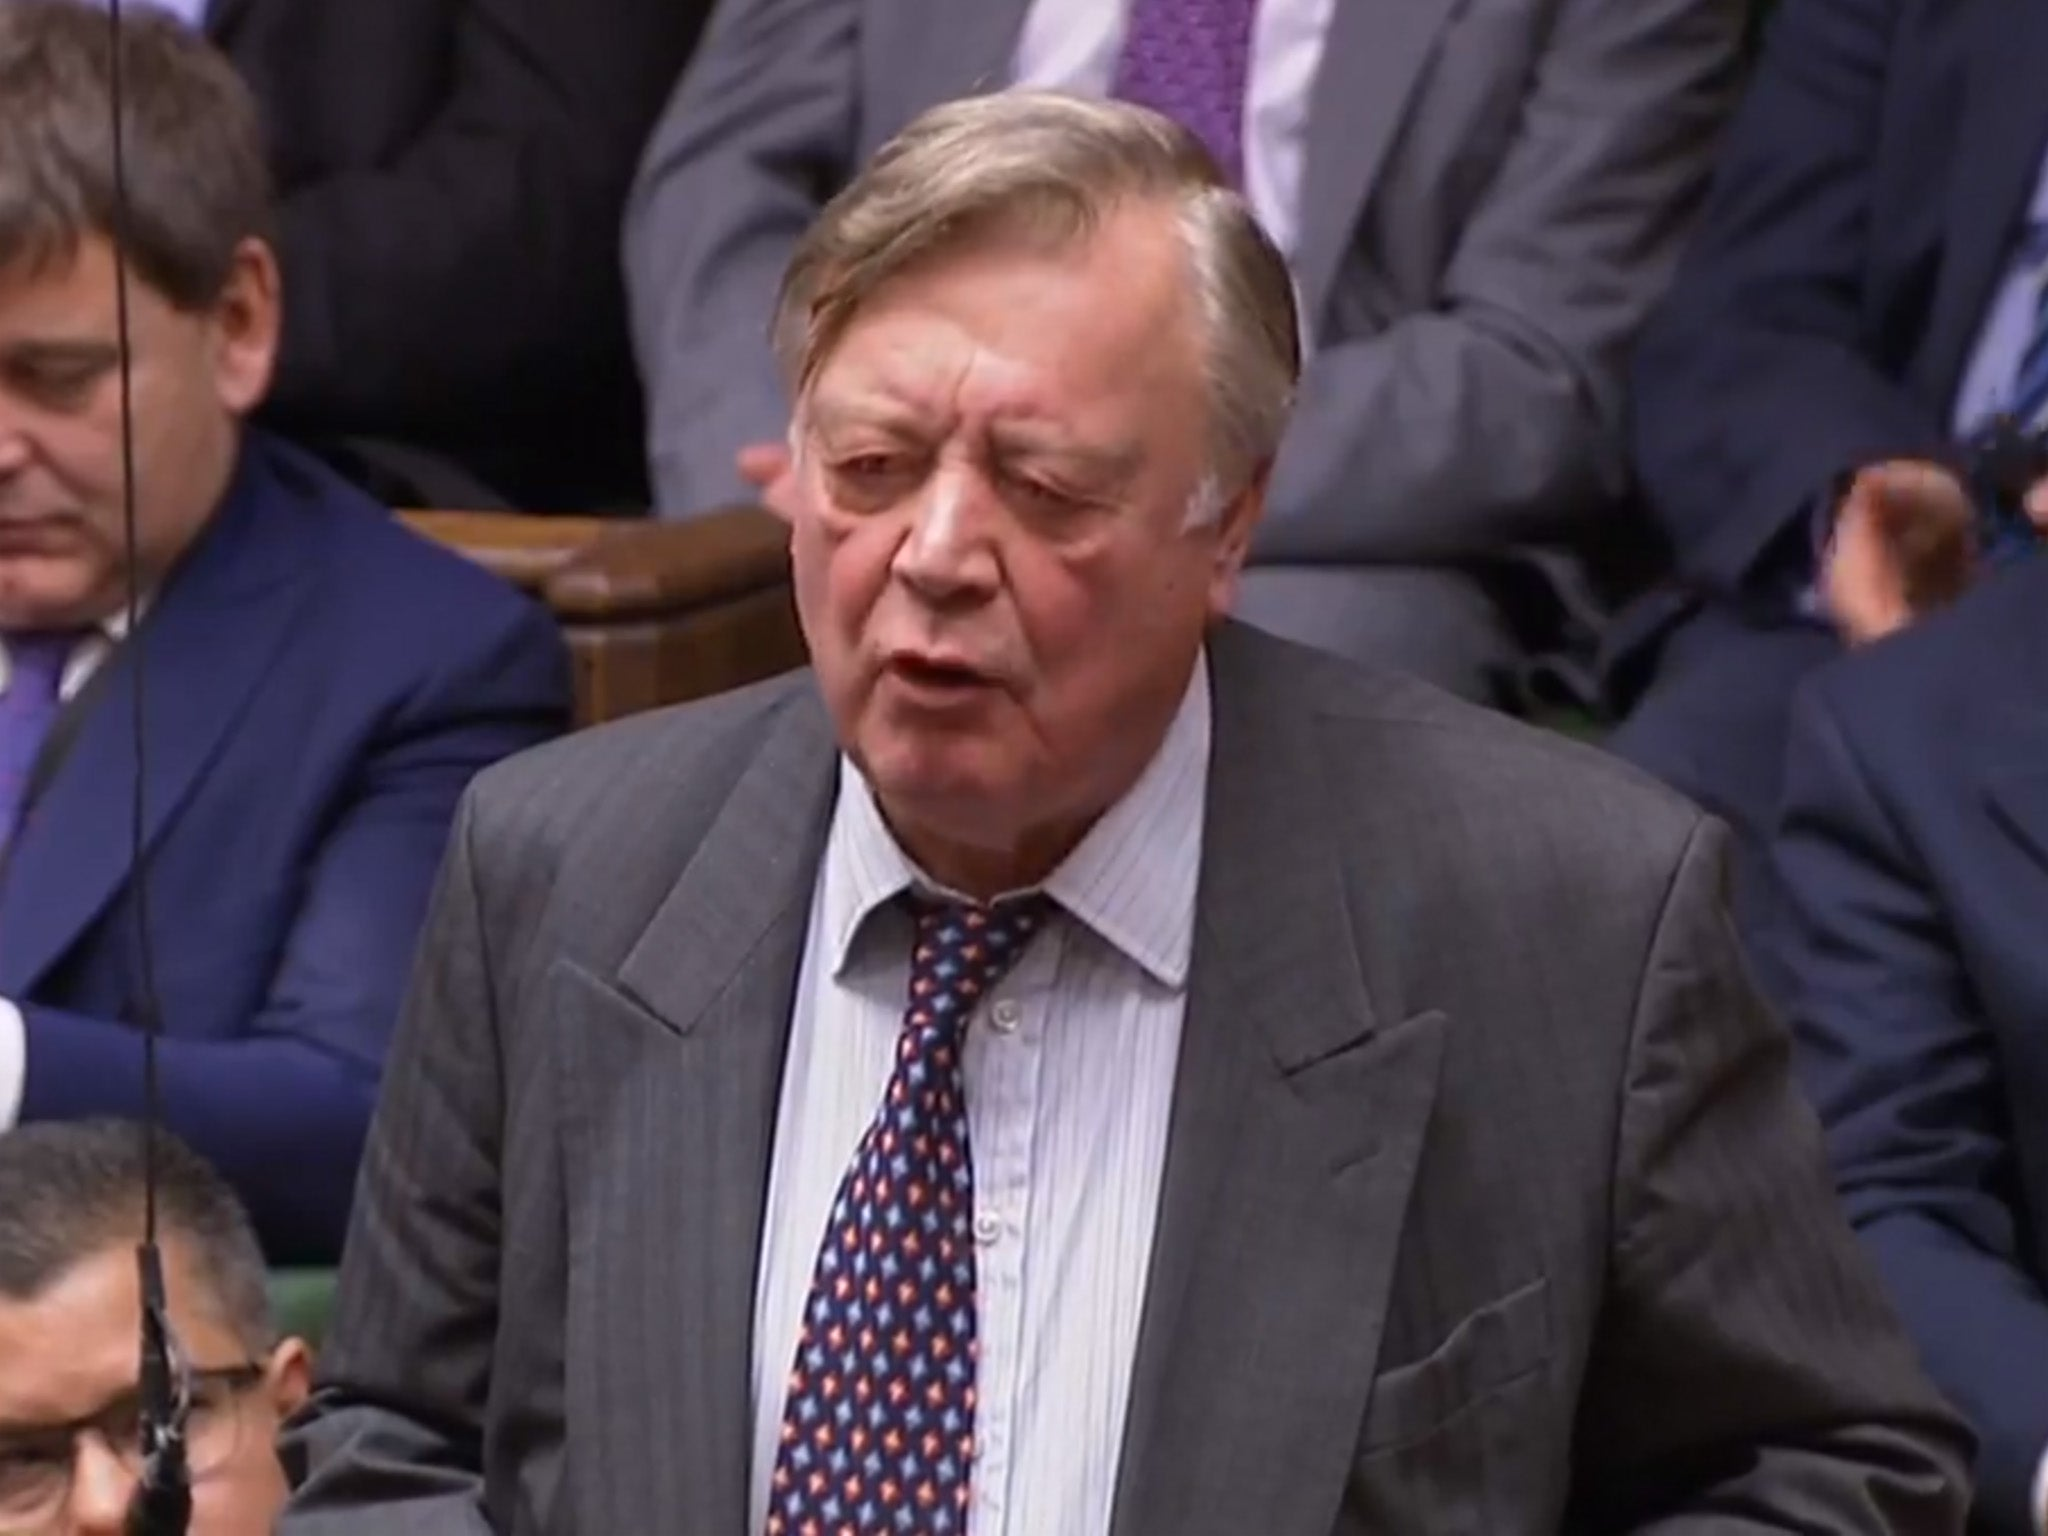 Ken Clarke willing to be caretaker PM to stop no-deal Brexit as rebe…